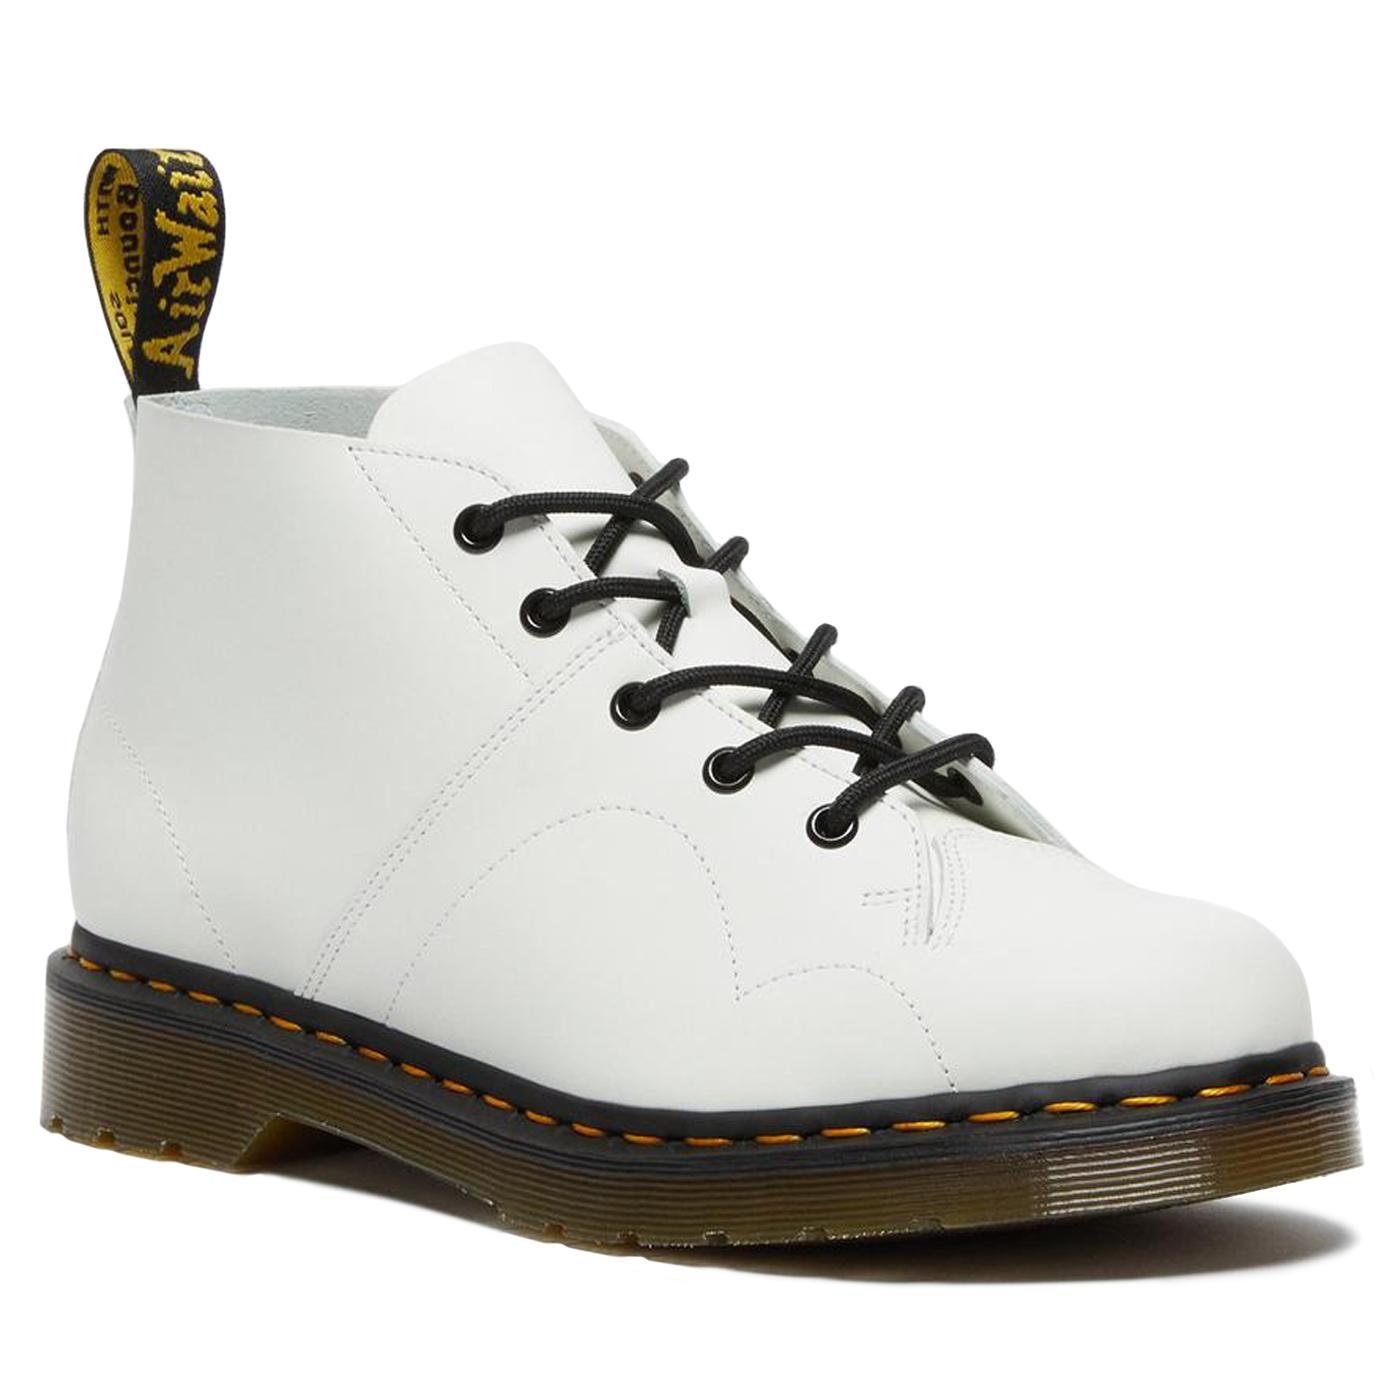 Church DR MARTENS Women's Retro Monkey Boots WHITE